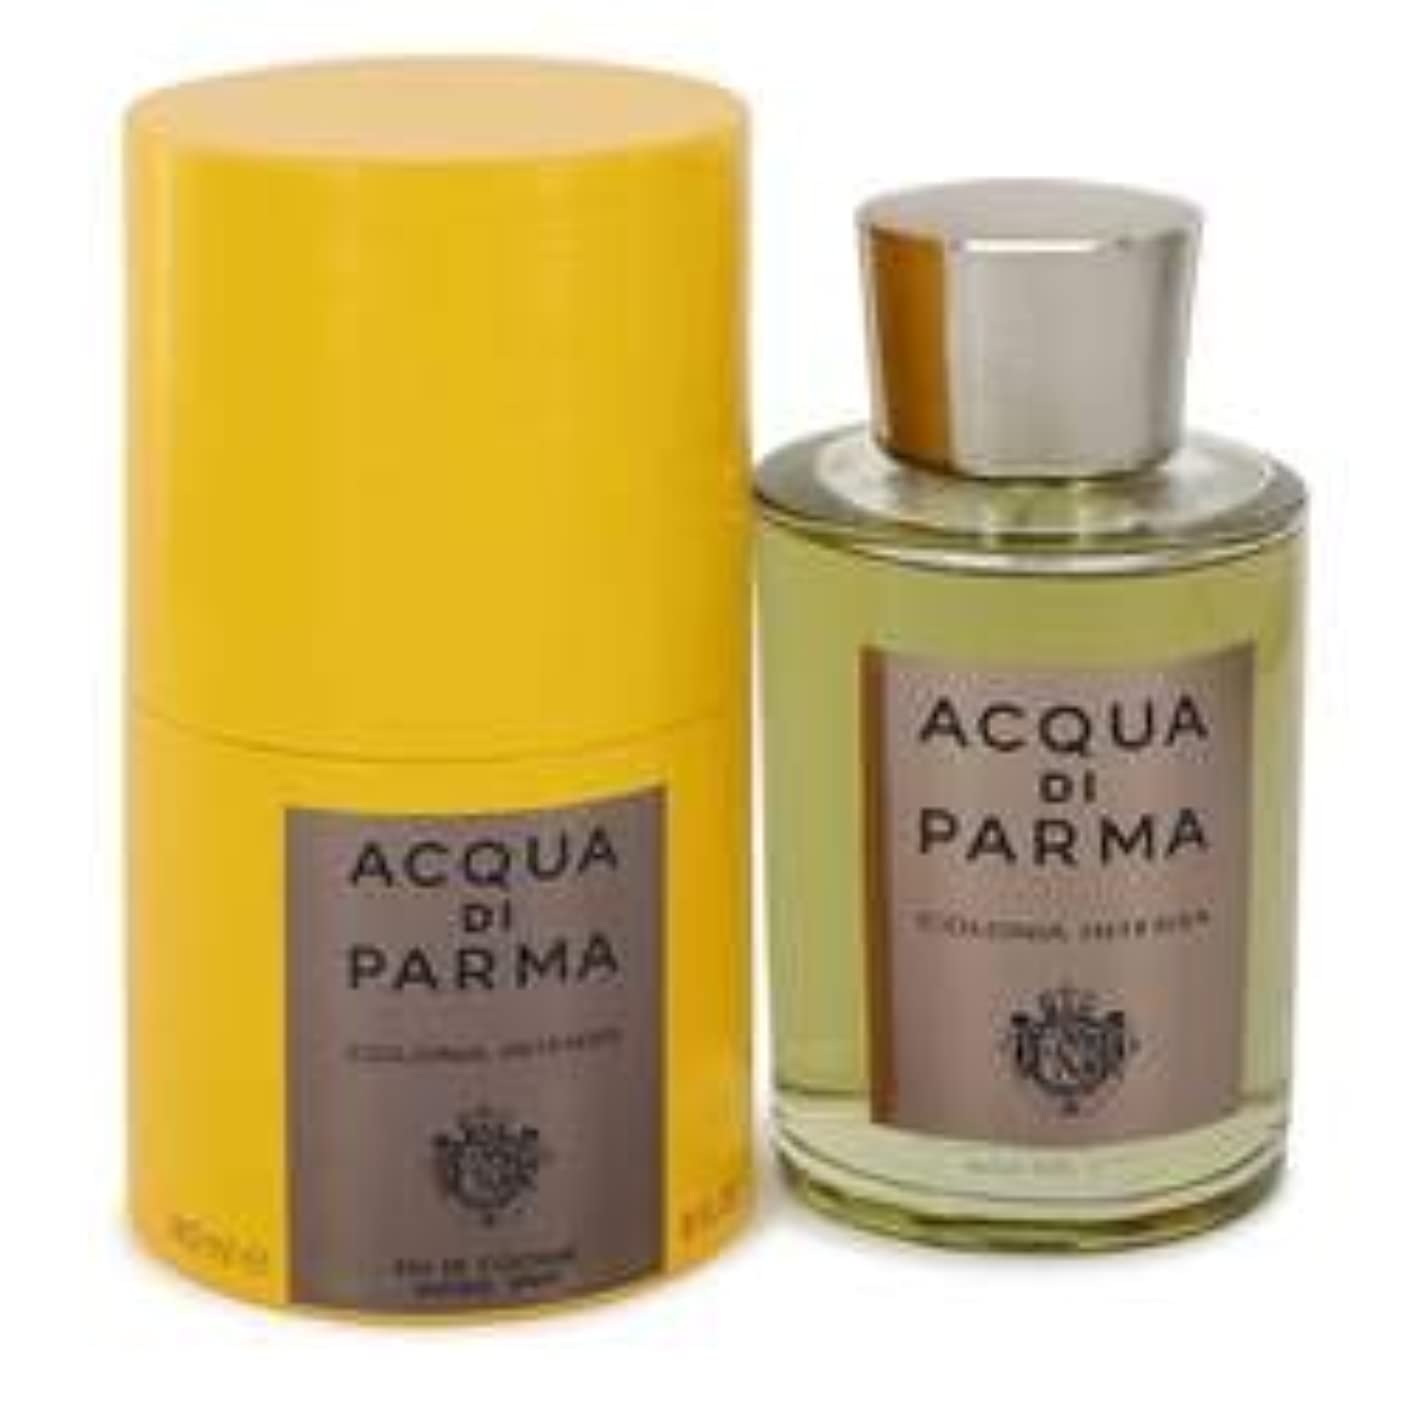 成熟した韻定説Acqua Di Parma Colonia Intensa Eau De Cologne Spray By Acqua Di Parma